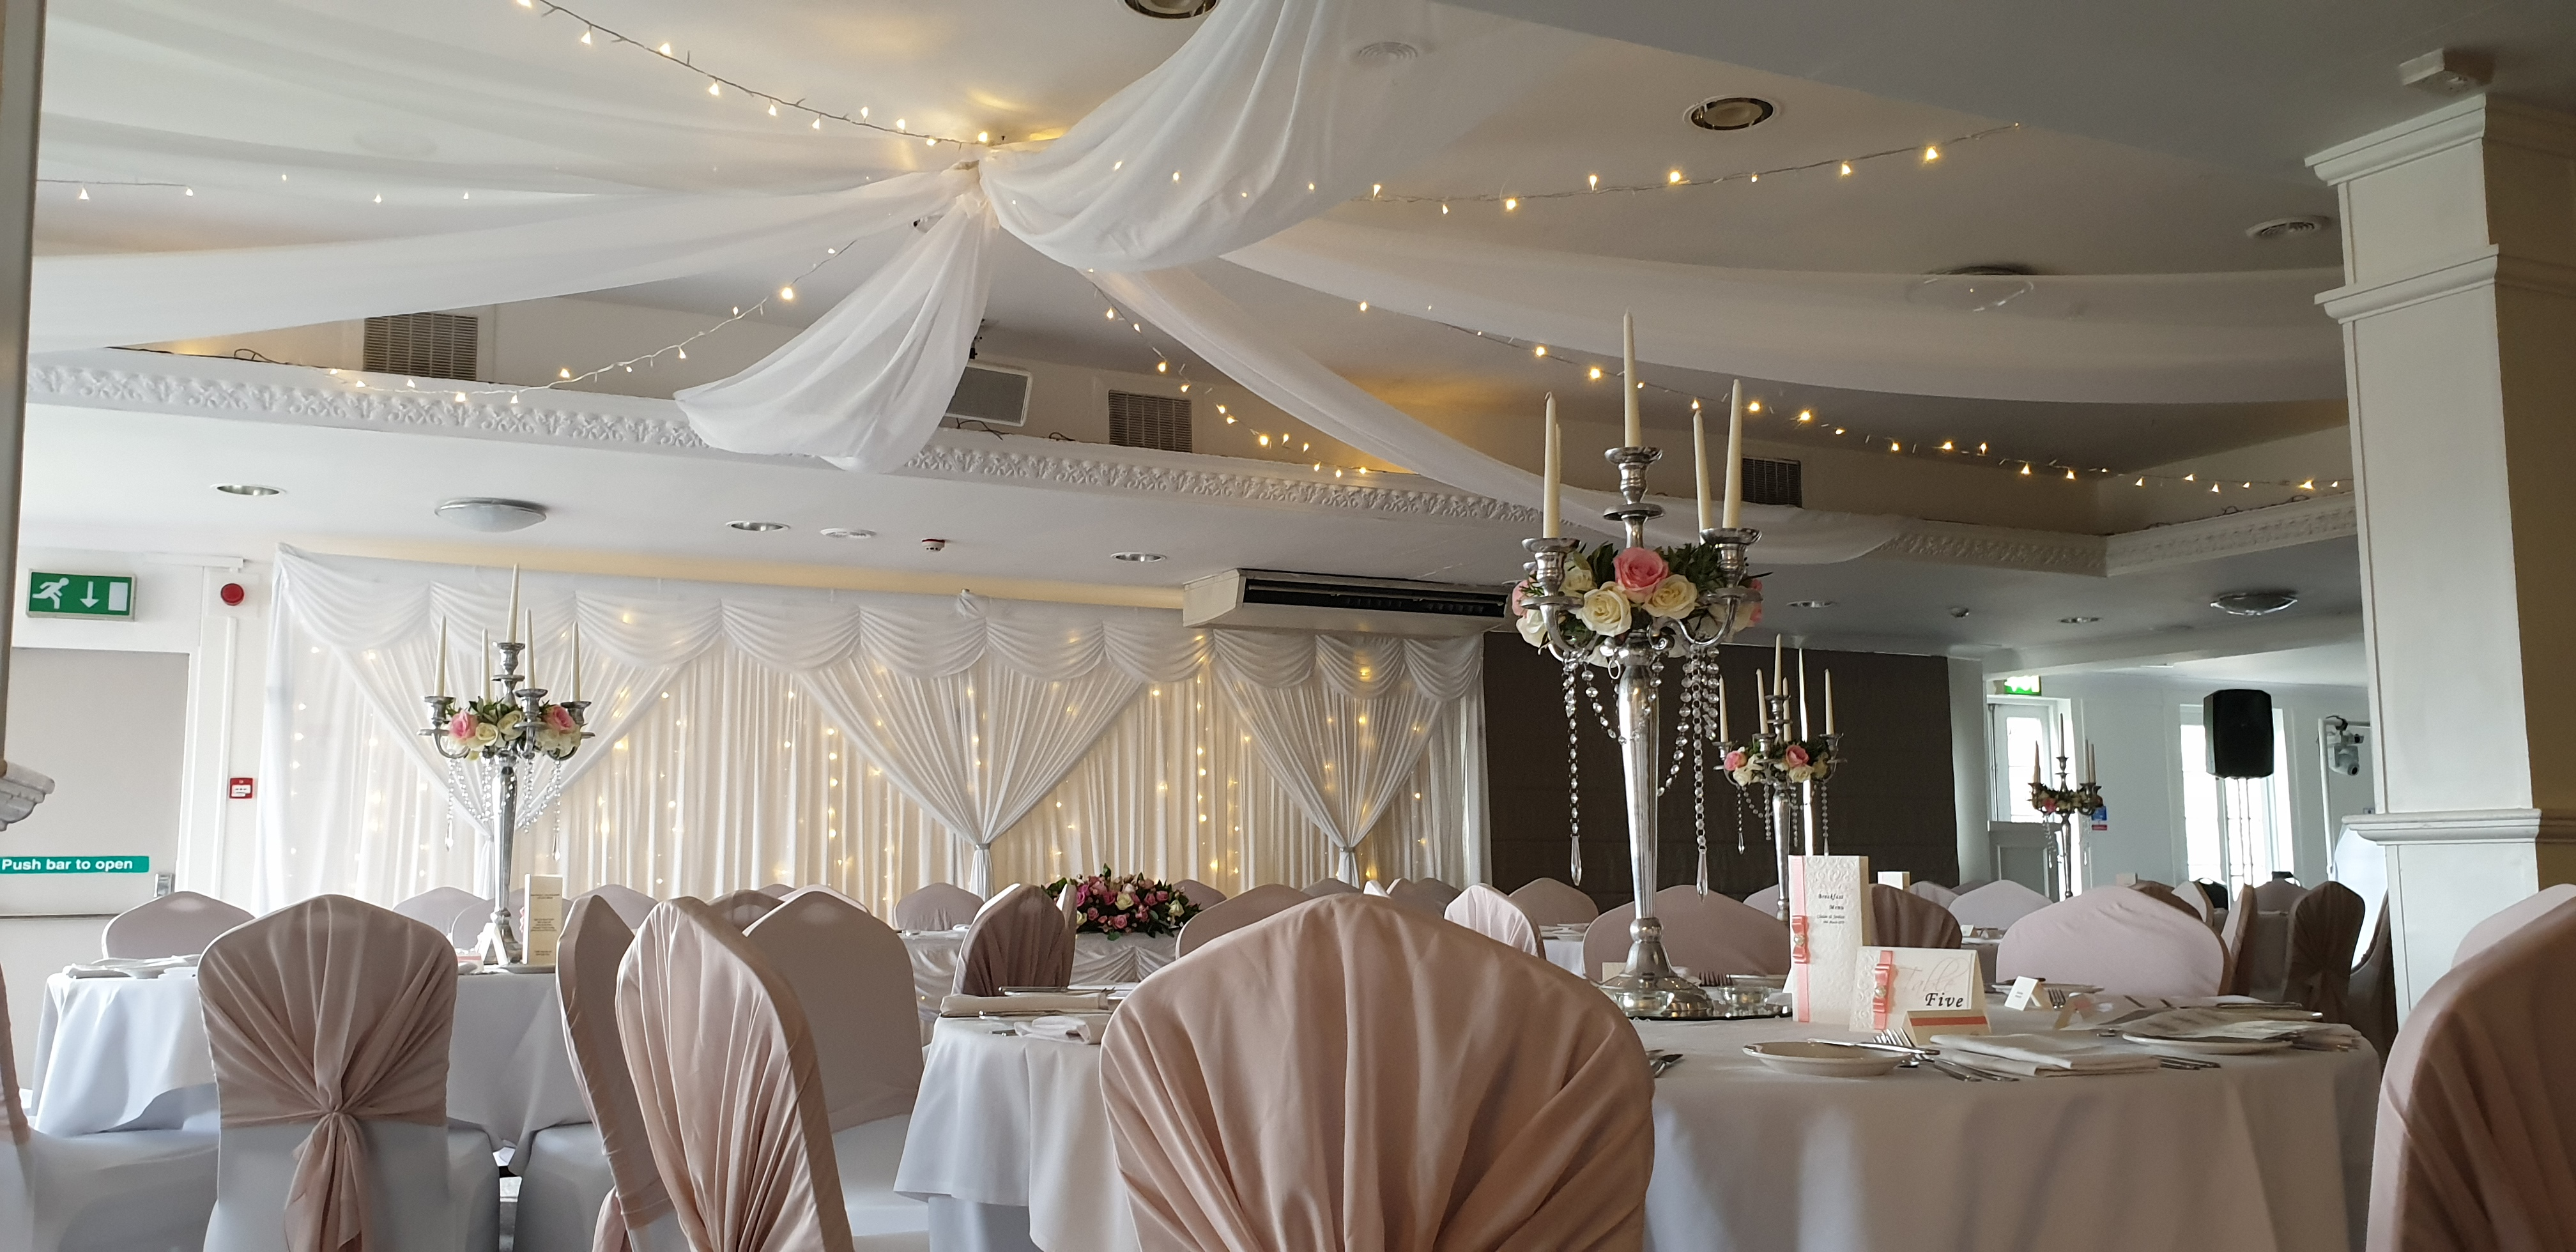 White Ceiling Swags with Warm White Lights